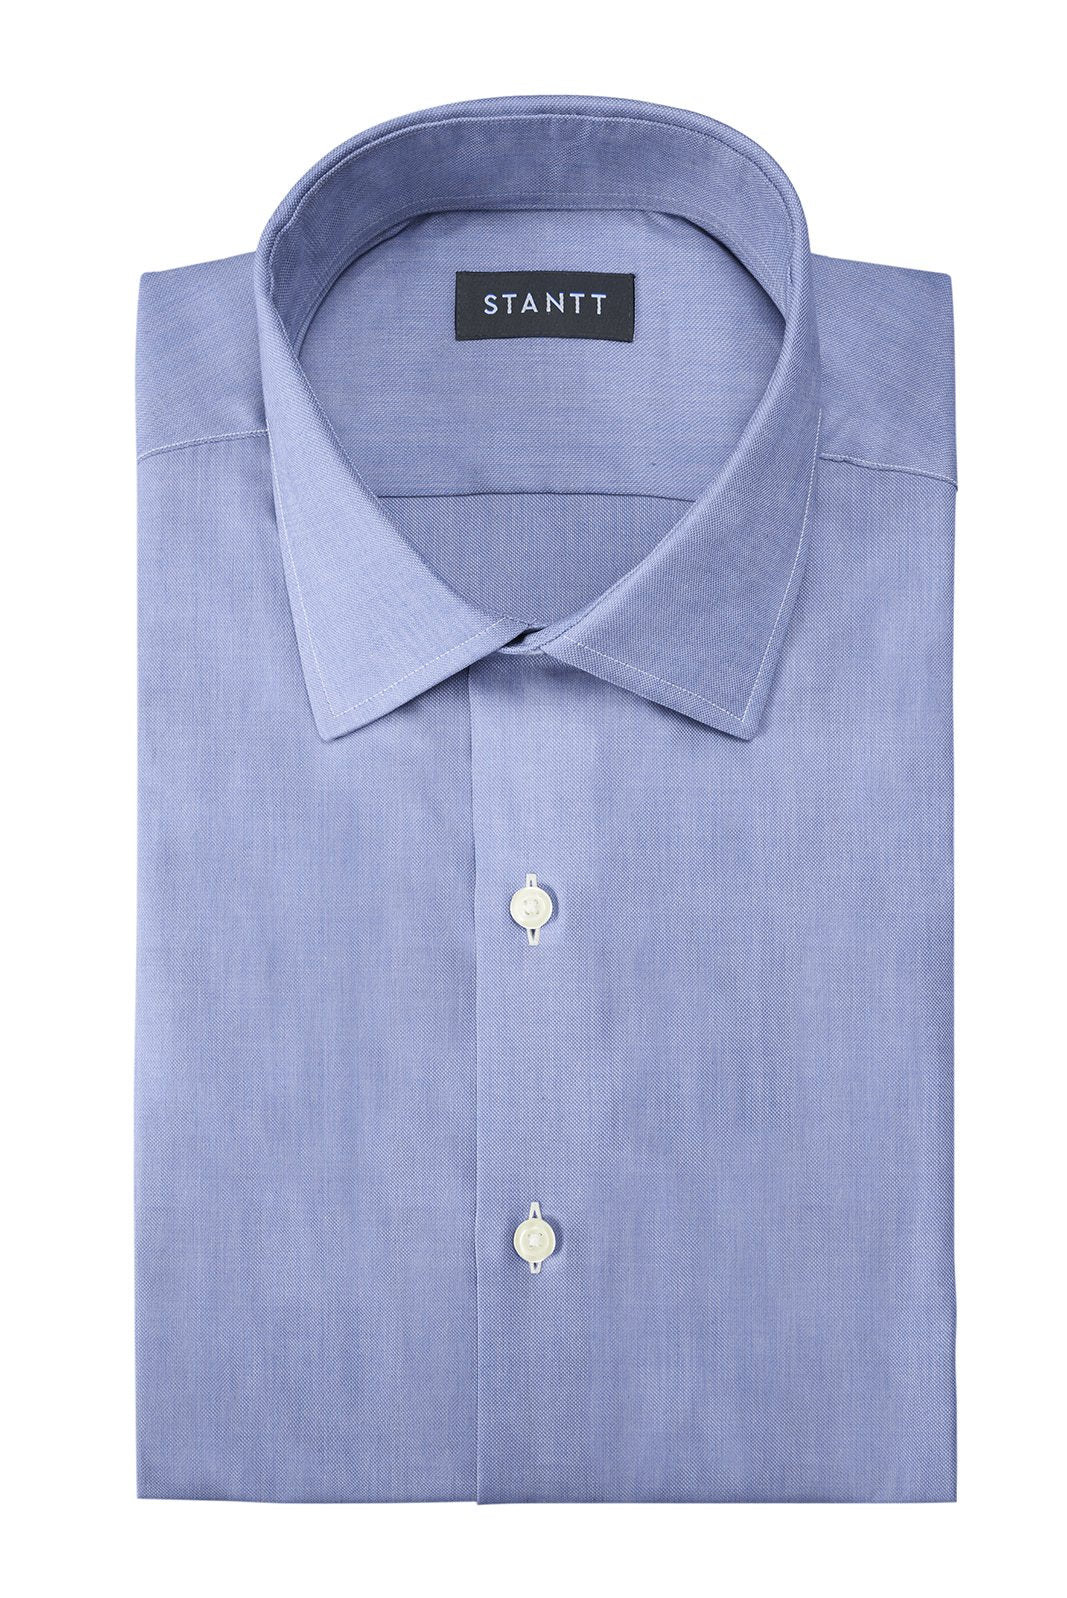 Soft Chambray: Modified-Spread Collar, French Cuff